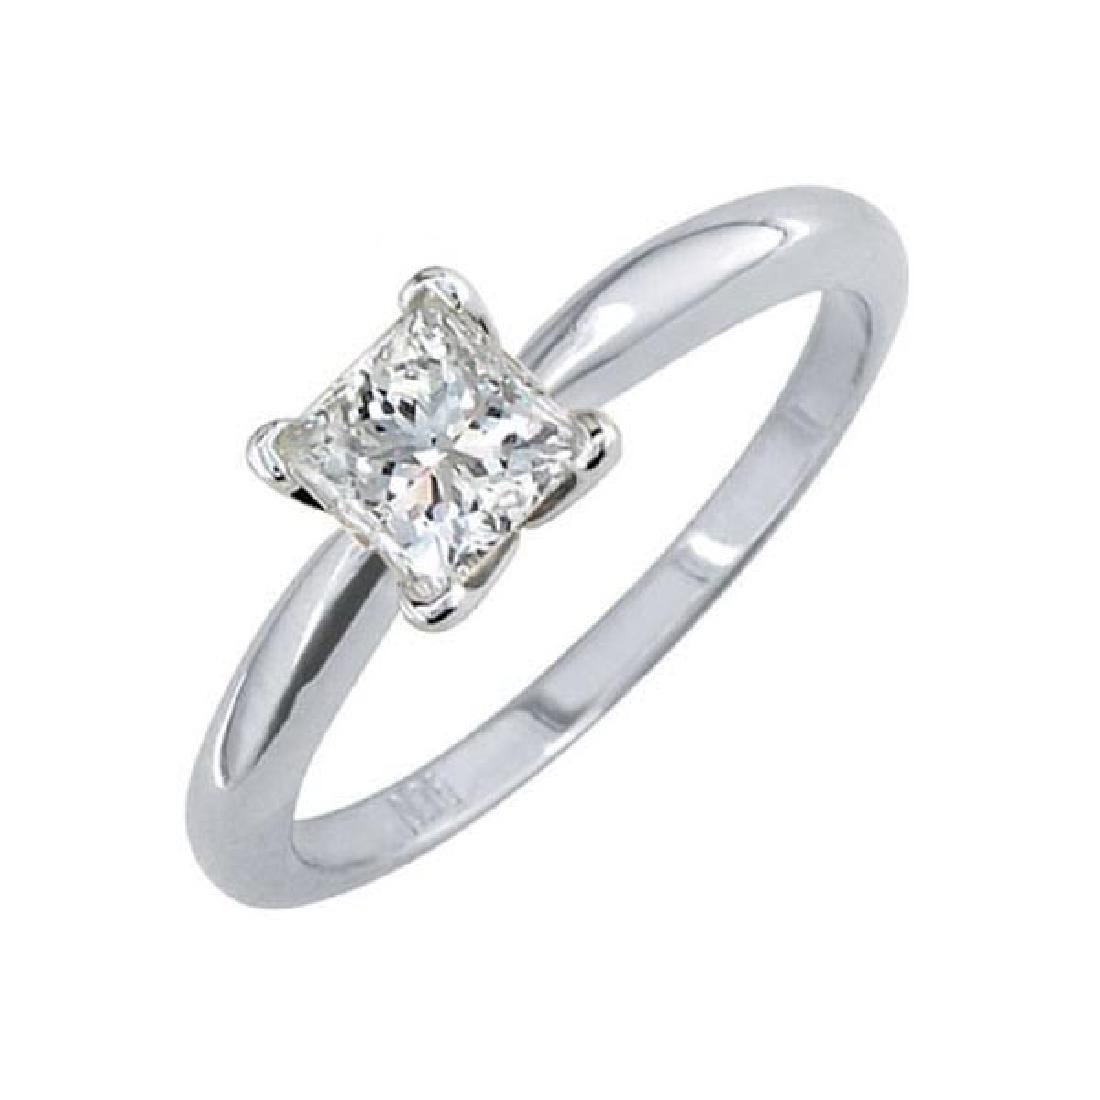 Certified 0.5 CTW Princess Diamond Solitaire 14k Ring G